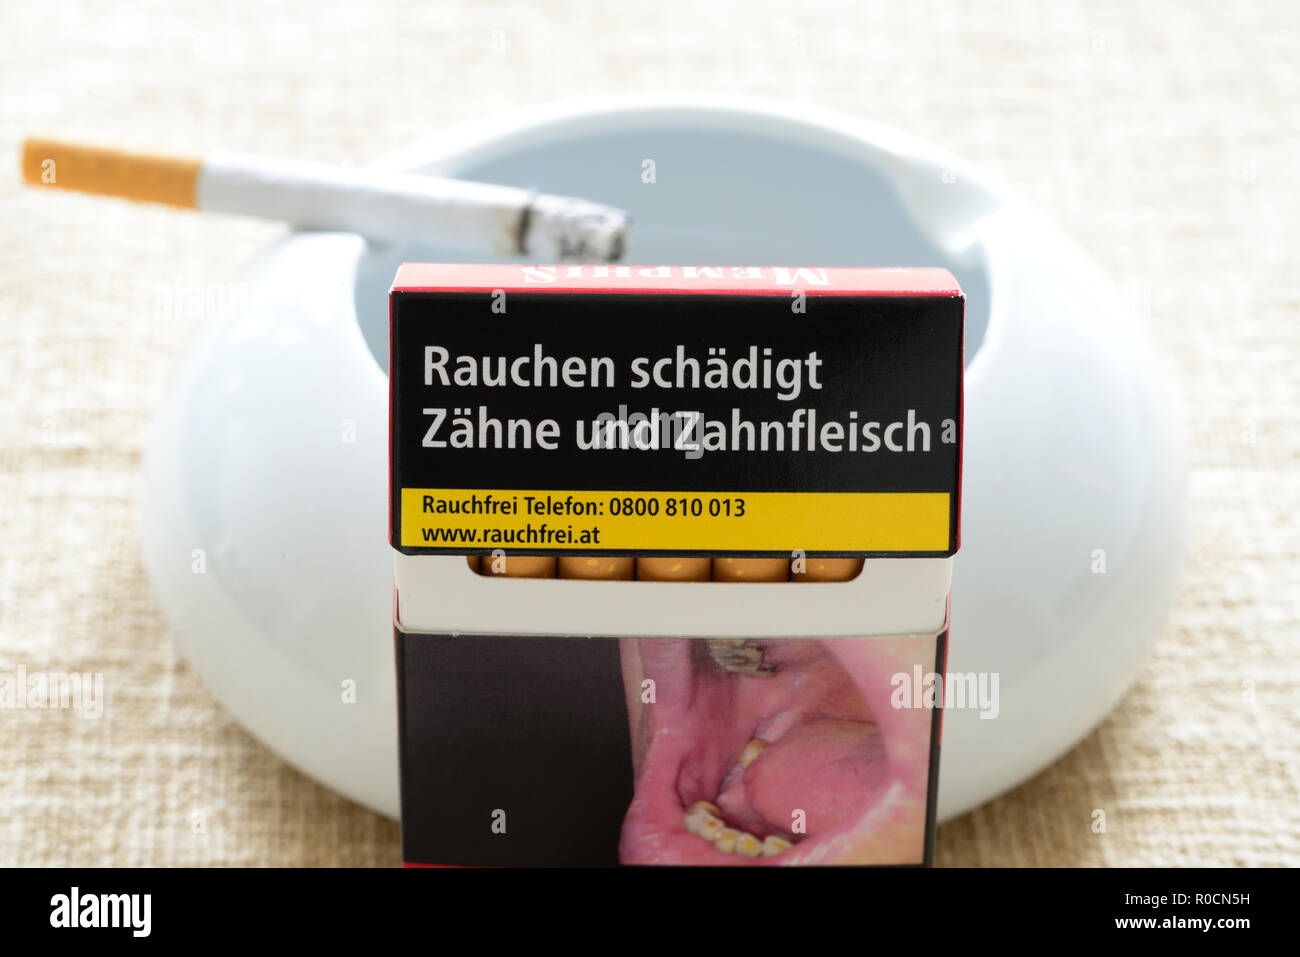 Pack of cigarettes with the warning smoking harms teeth and gums. - Stock Image